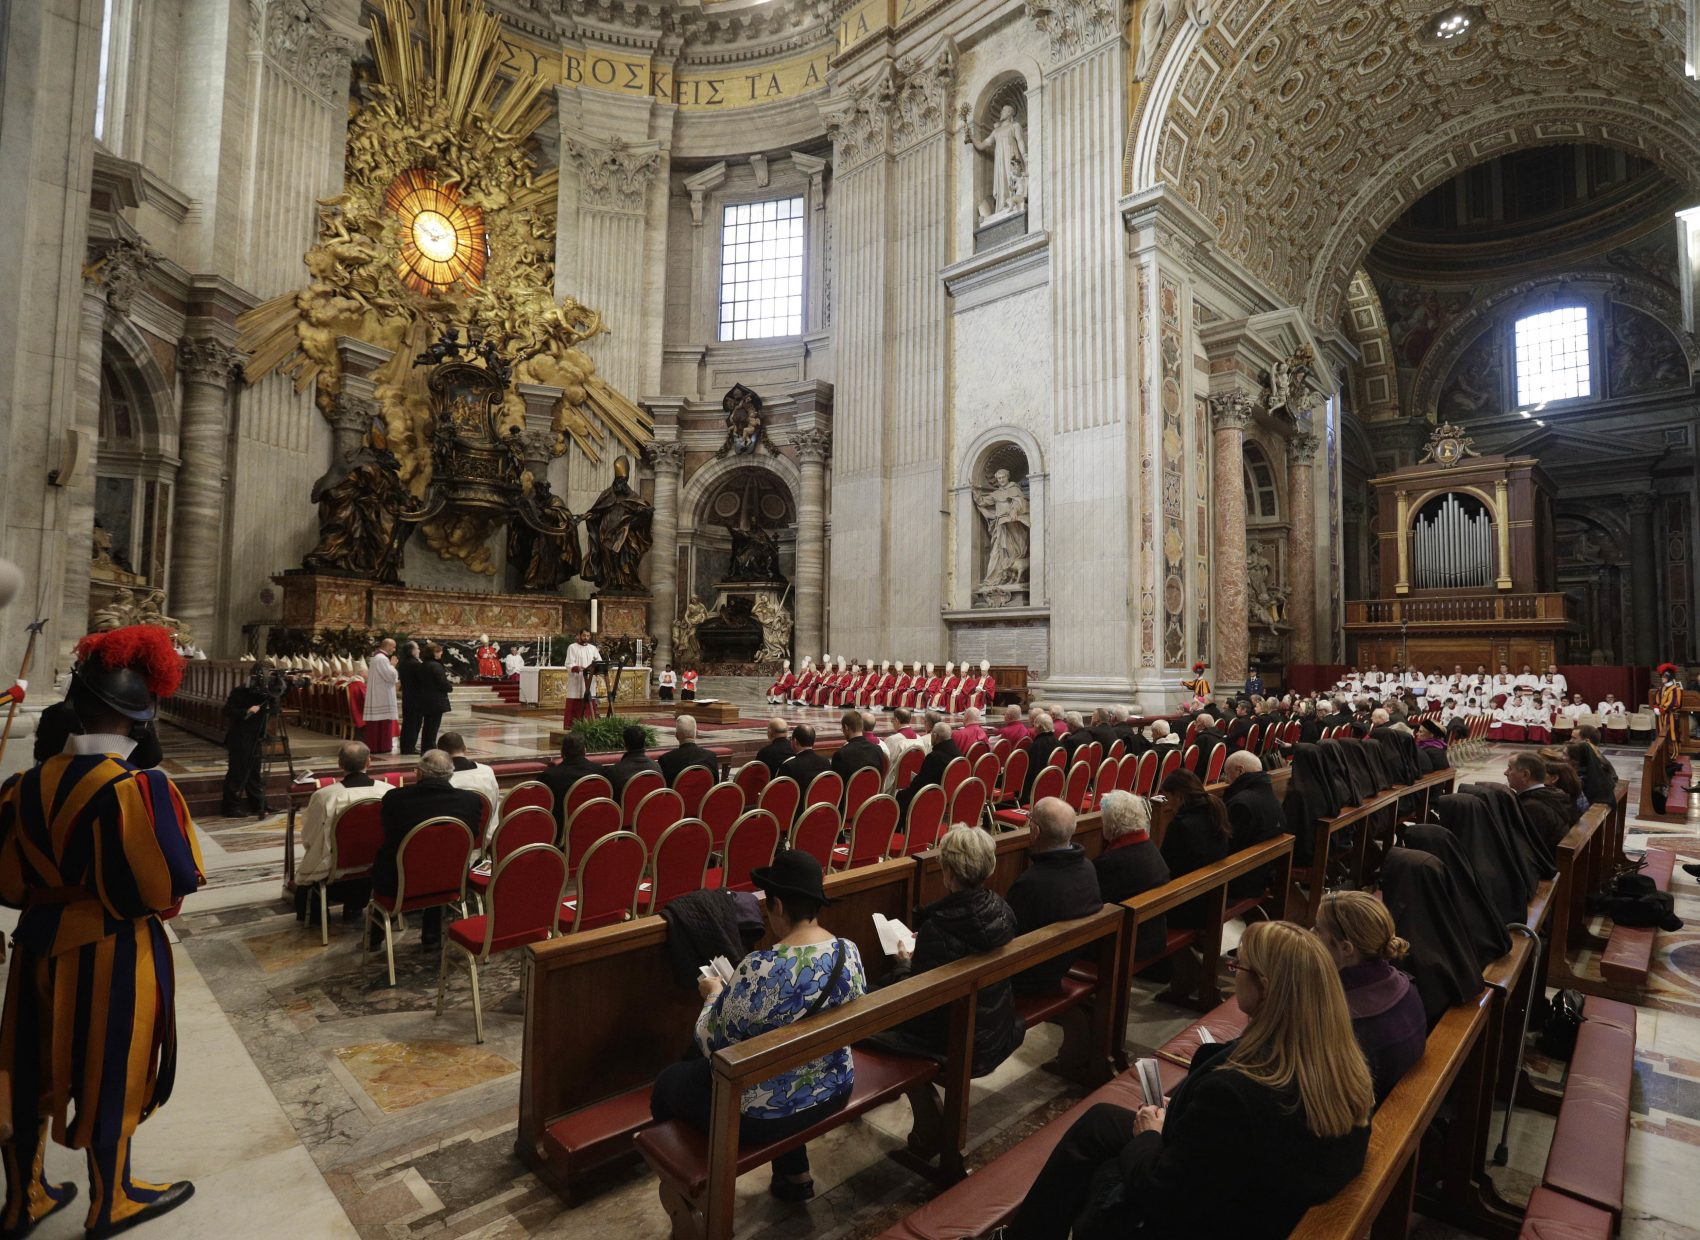 at funeral pope prays for merciful final judgment for cardinal